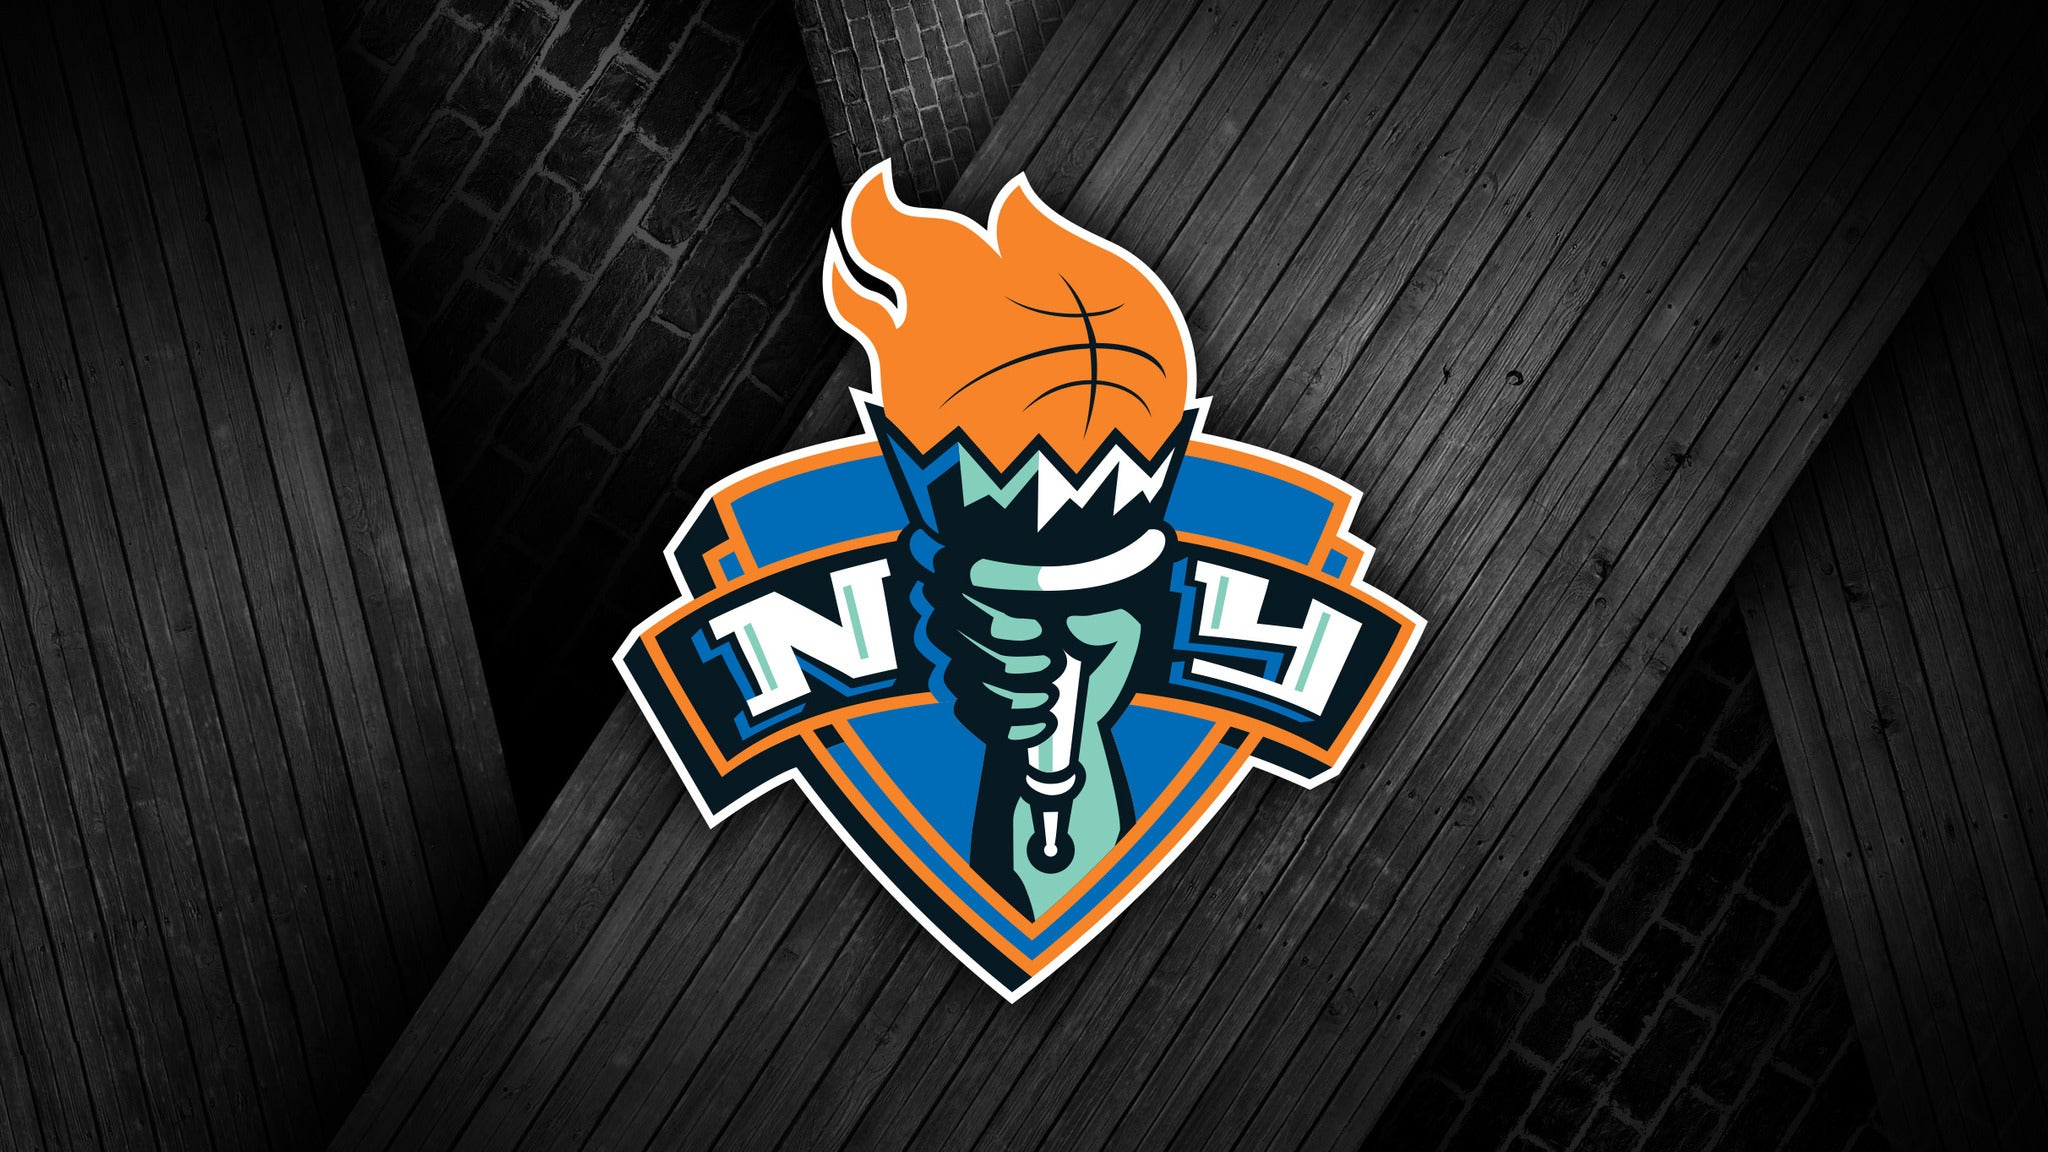 New York Liberty vs. Los Angeles Sparks